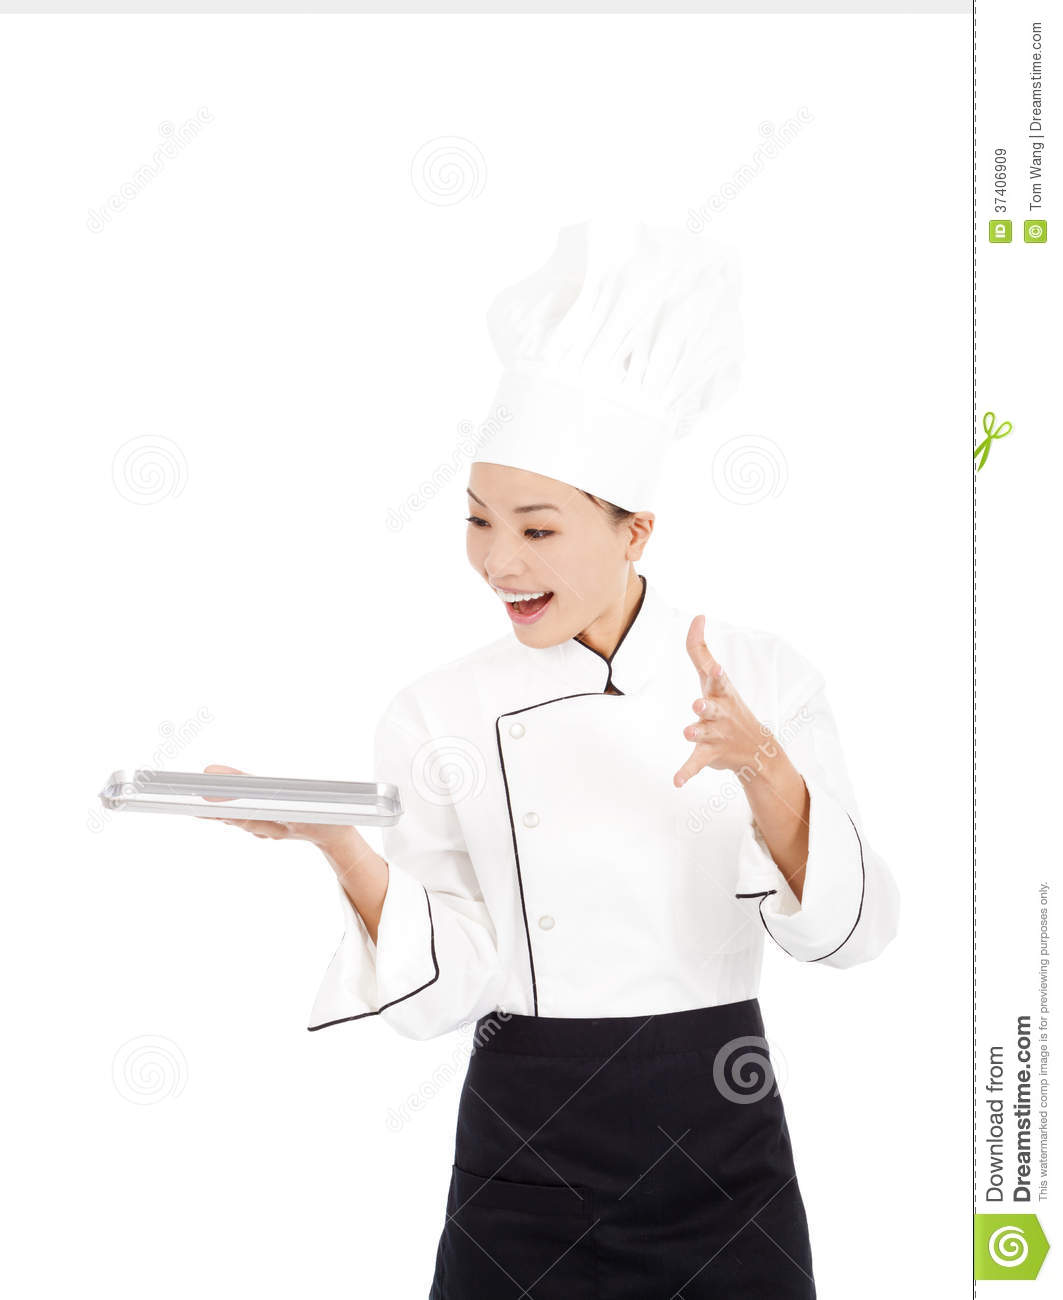 how to cook somthing amazing